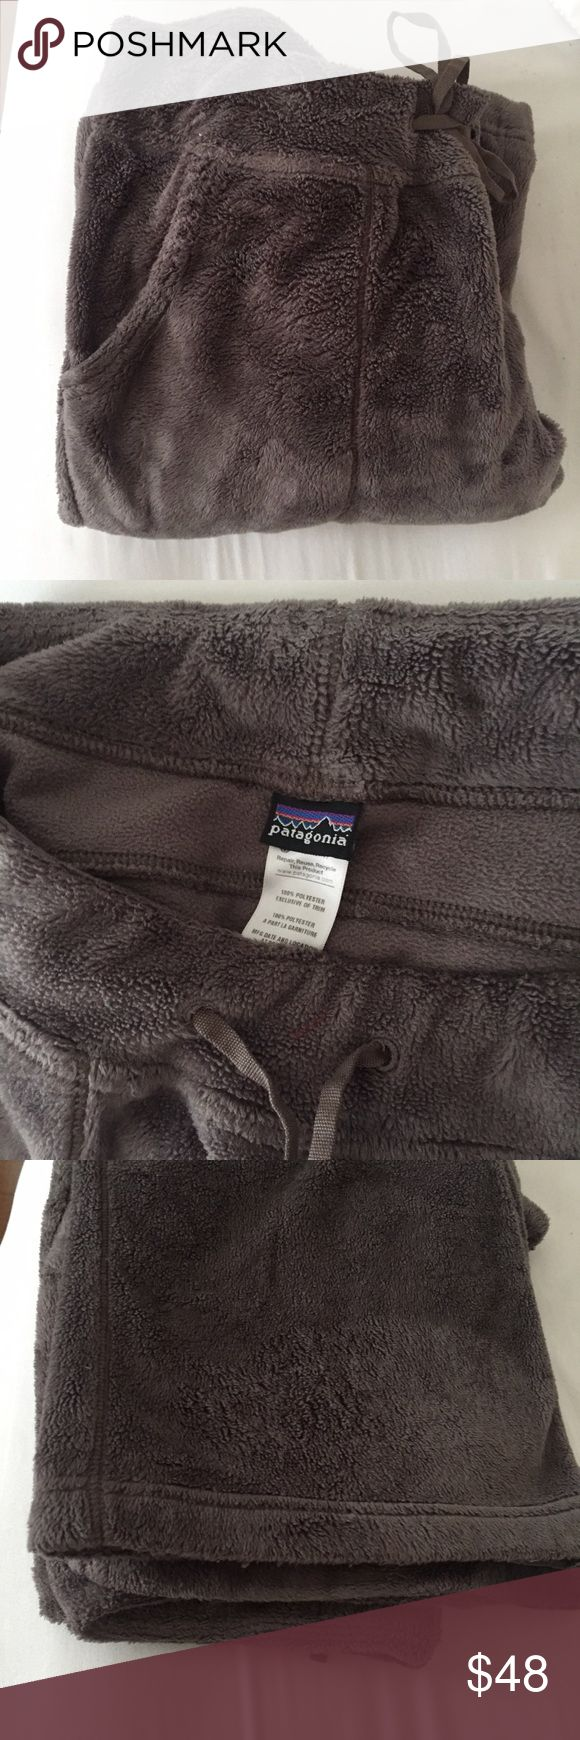 "Patagonia Furry Fleece Straight Leg Pant women's S This is a beautiful pair of Patagonia fuzzy fleece pants. Drawstring with elastic waist. 2 large pockets on the front. No pockets in the back. Made of super soft fleece. Taupy /brown.waist 29"" inseam 32"" rise 9.5"". No flaws. Perfect condition. Patagonia Pants Track Pants & Joggers"